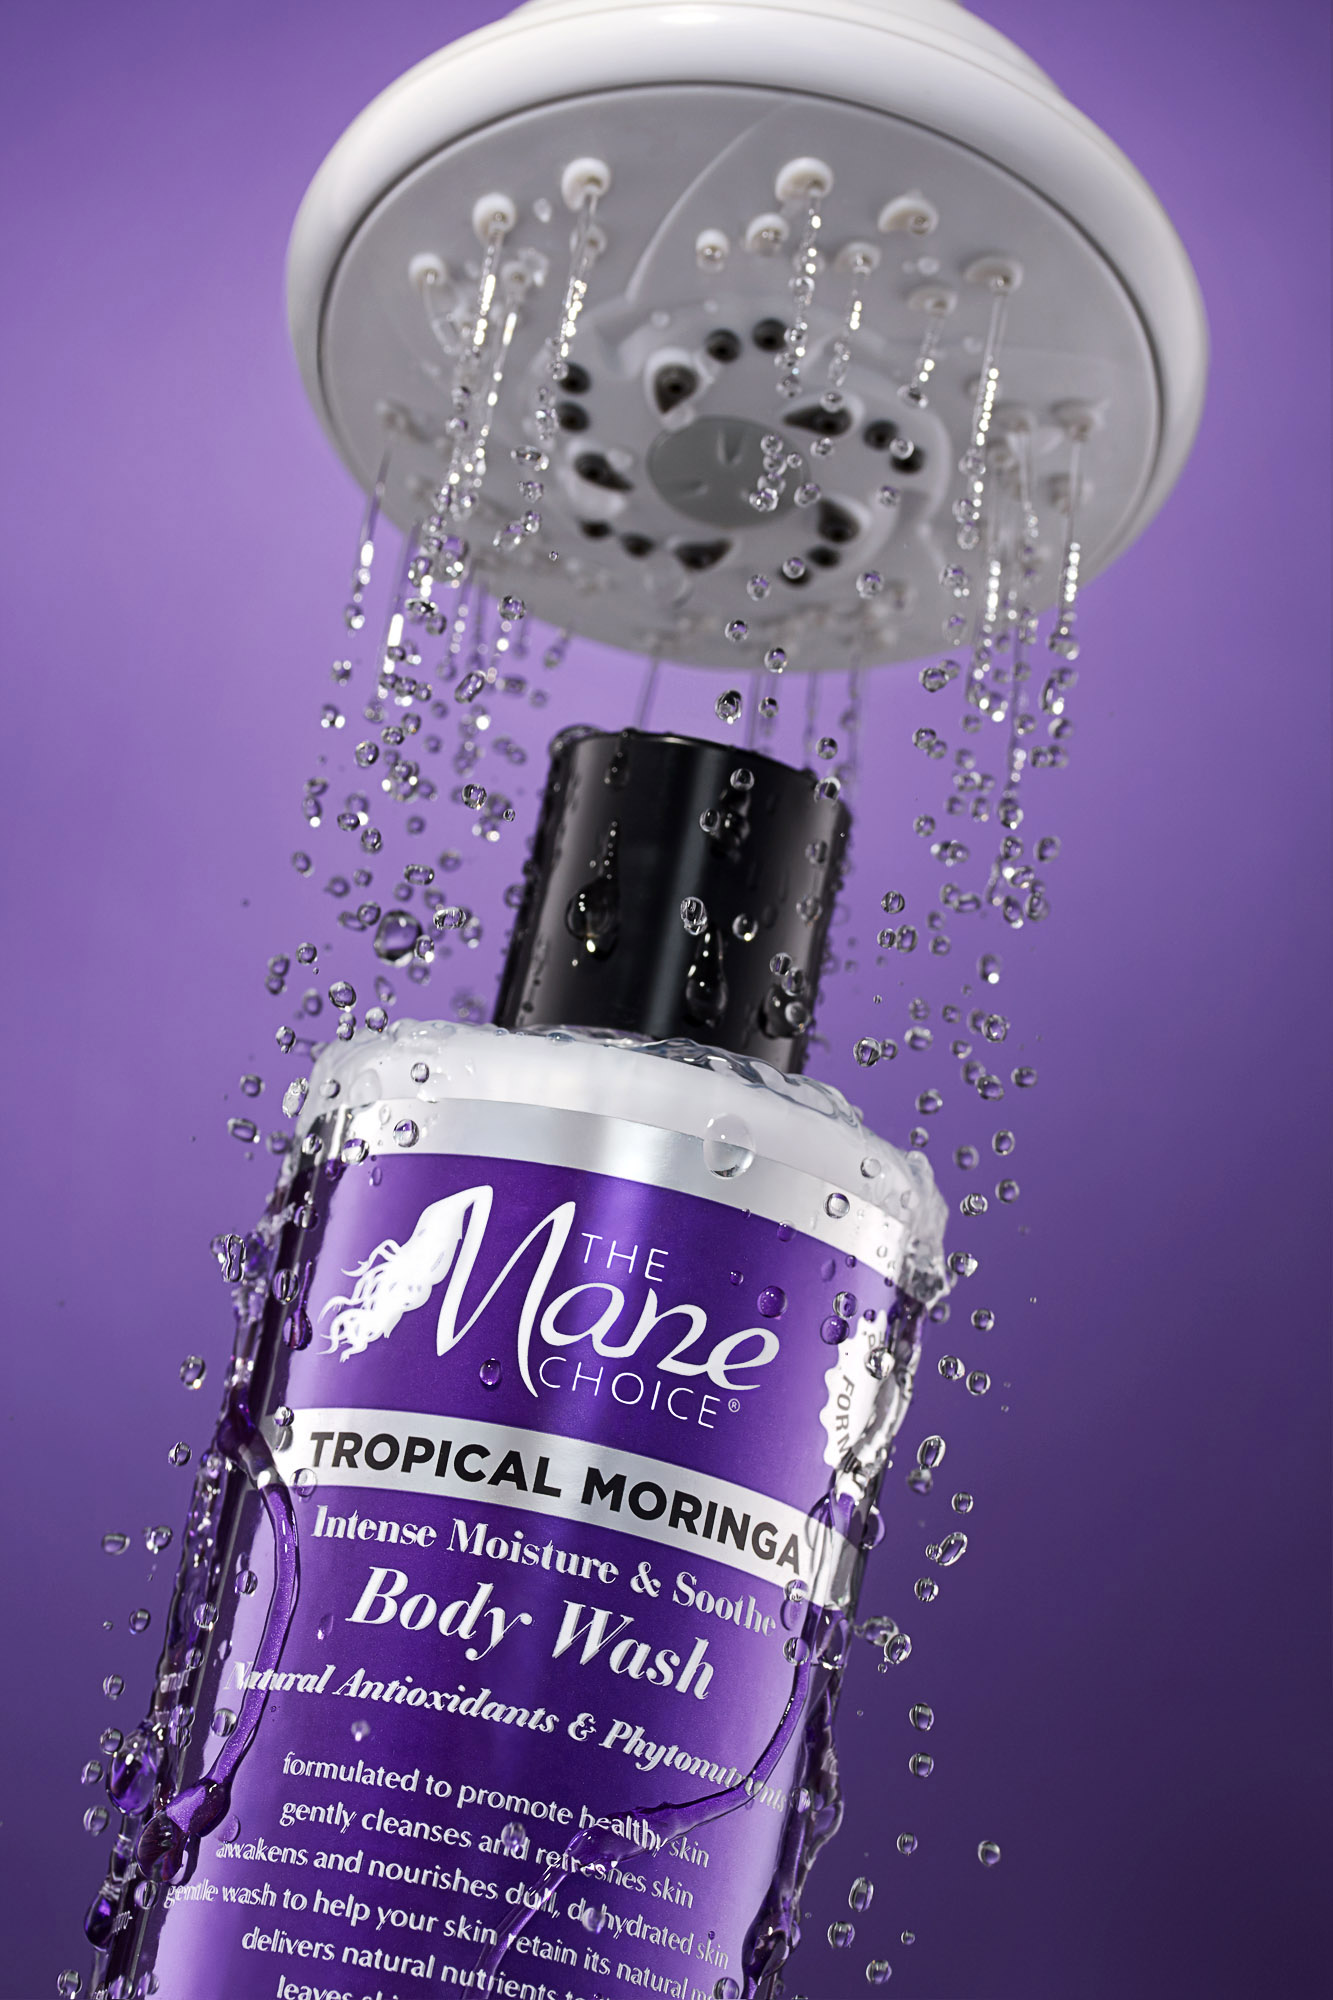 01 Fielder Williams Strain fiwist Nashville Product Photographer The Mane Choice topical moringa body wash 001.jpg